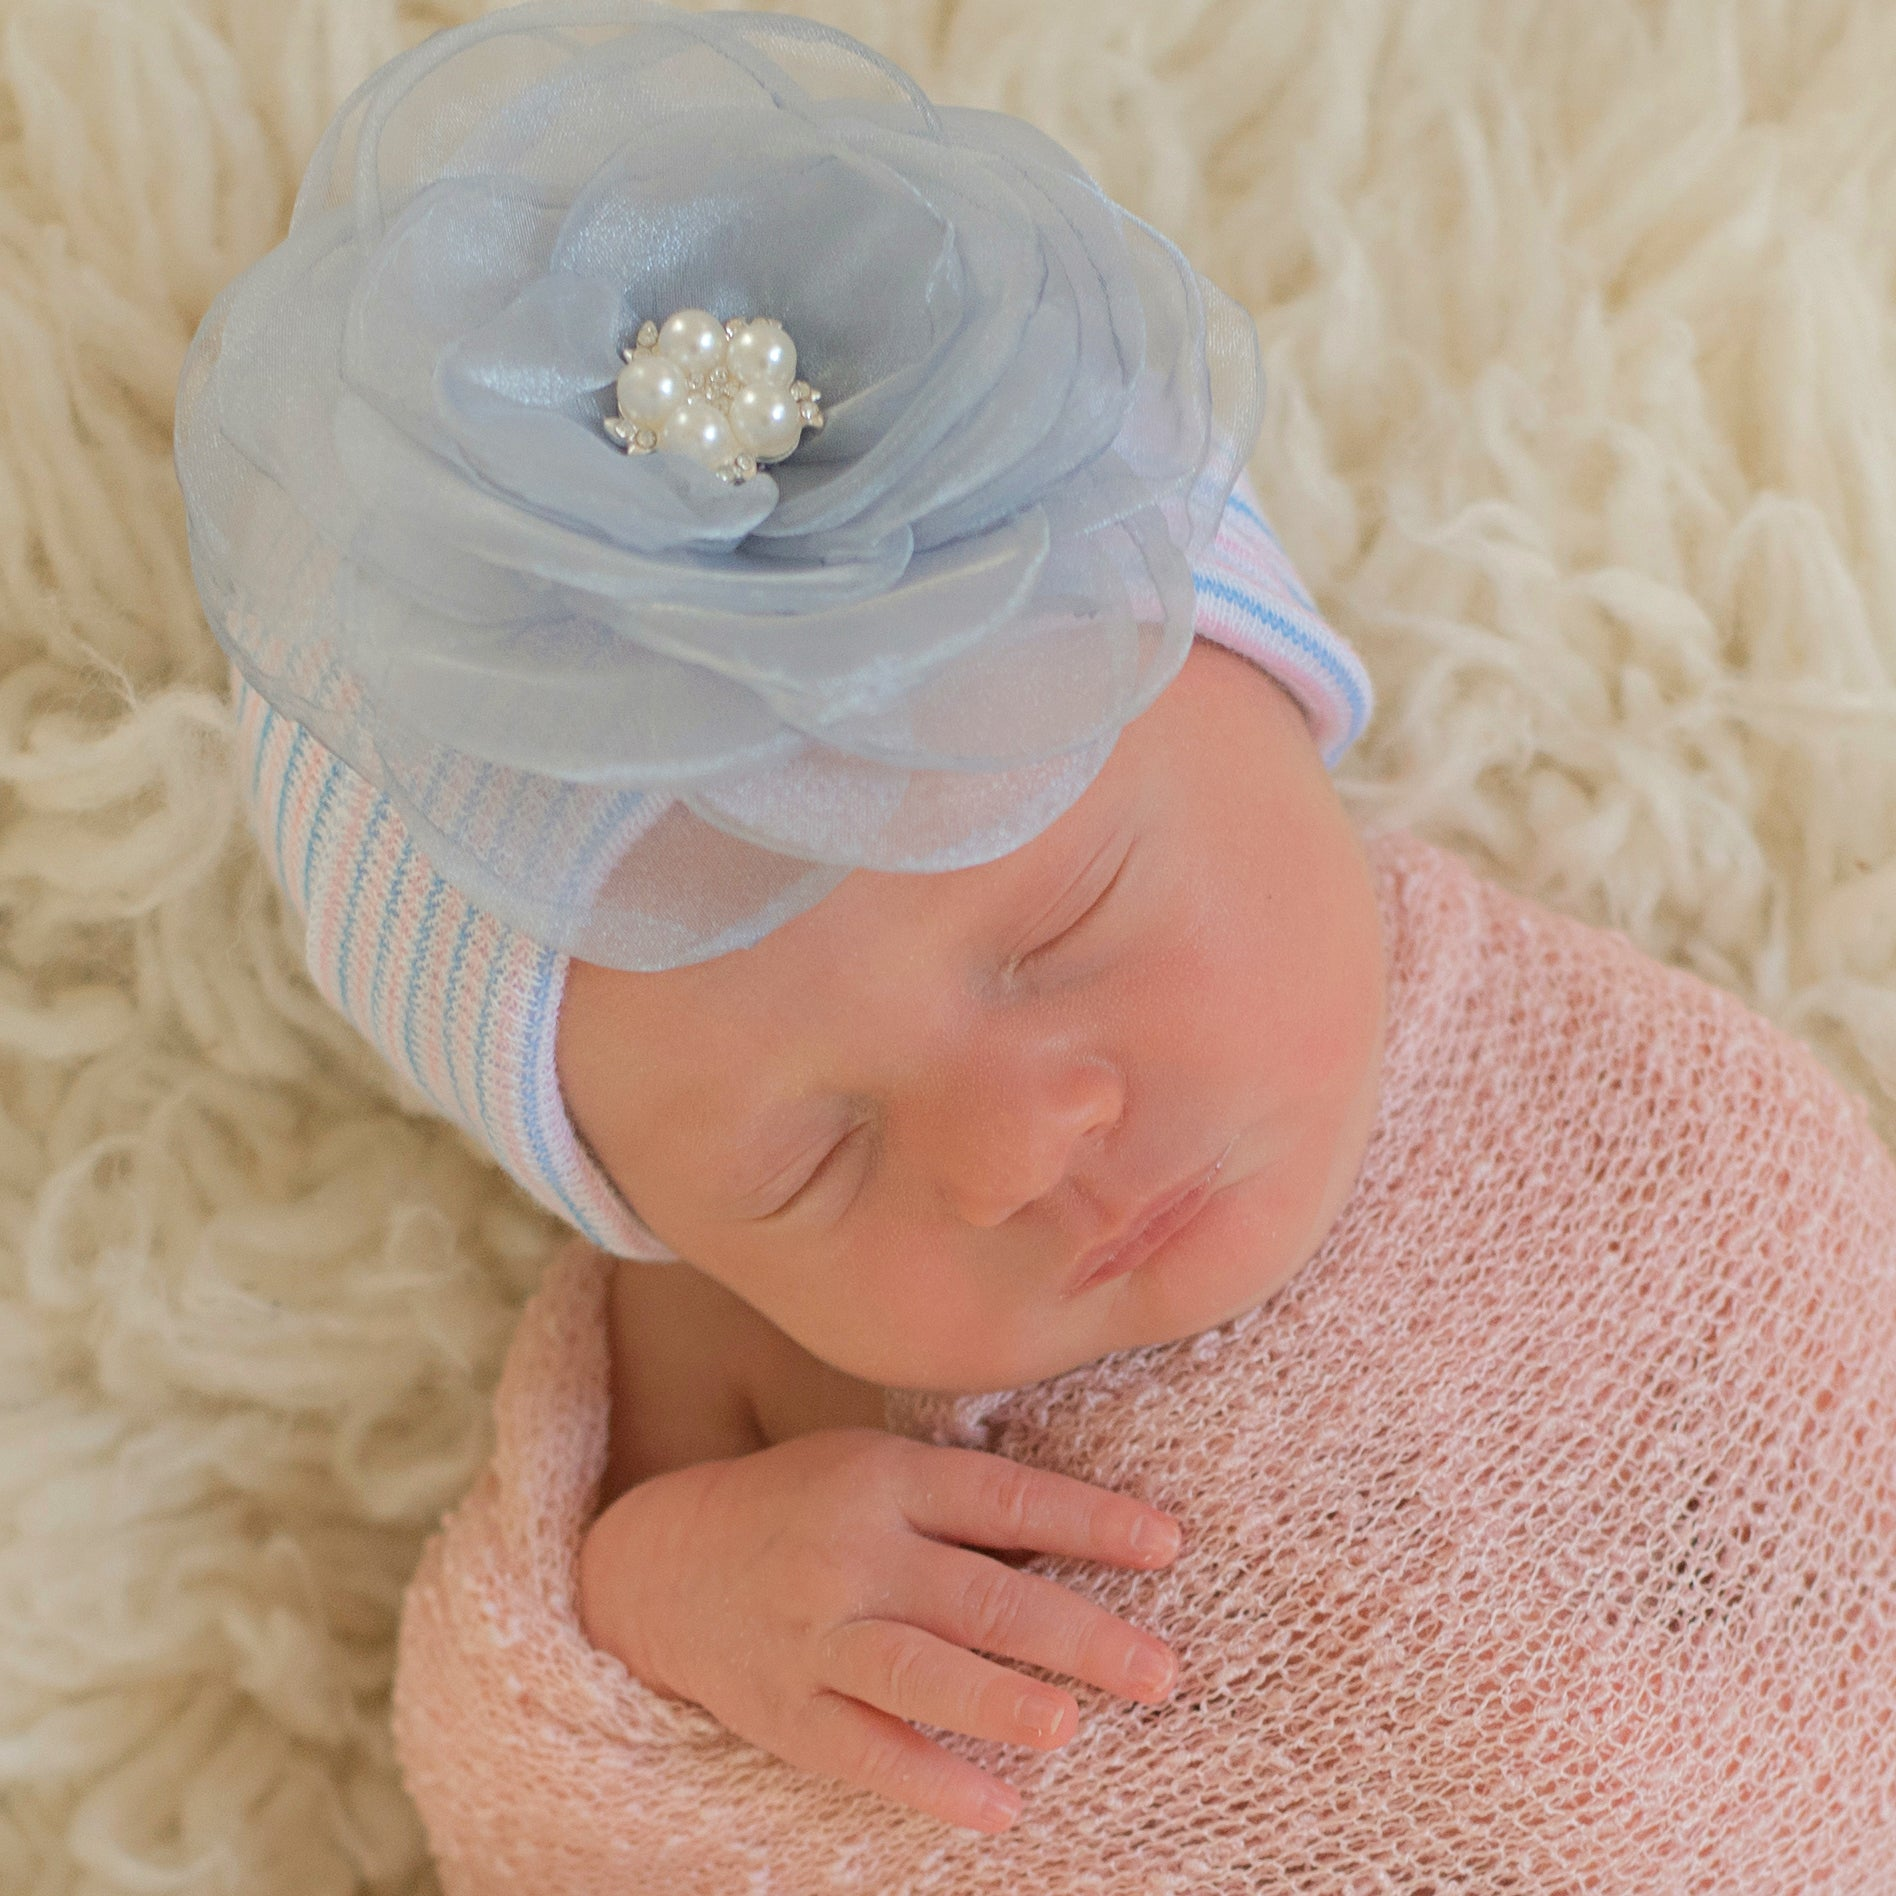 ilybean Blue Ice Chiffon Flower Pink, White & Blue Striped Newborn Hospital Hat